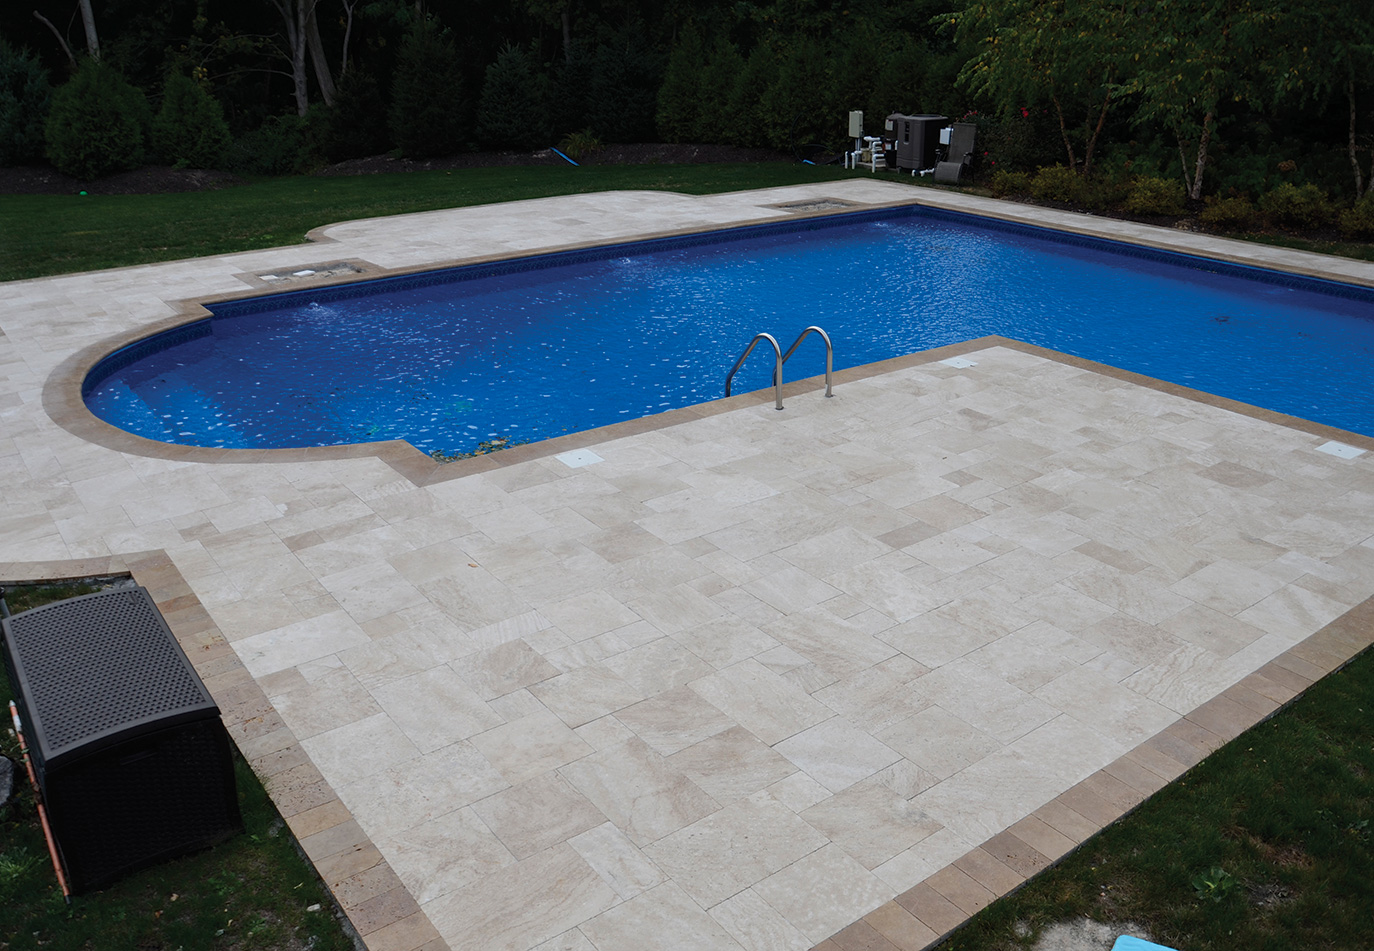 beige stone poolscape patio